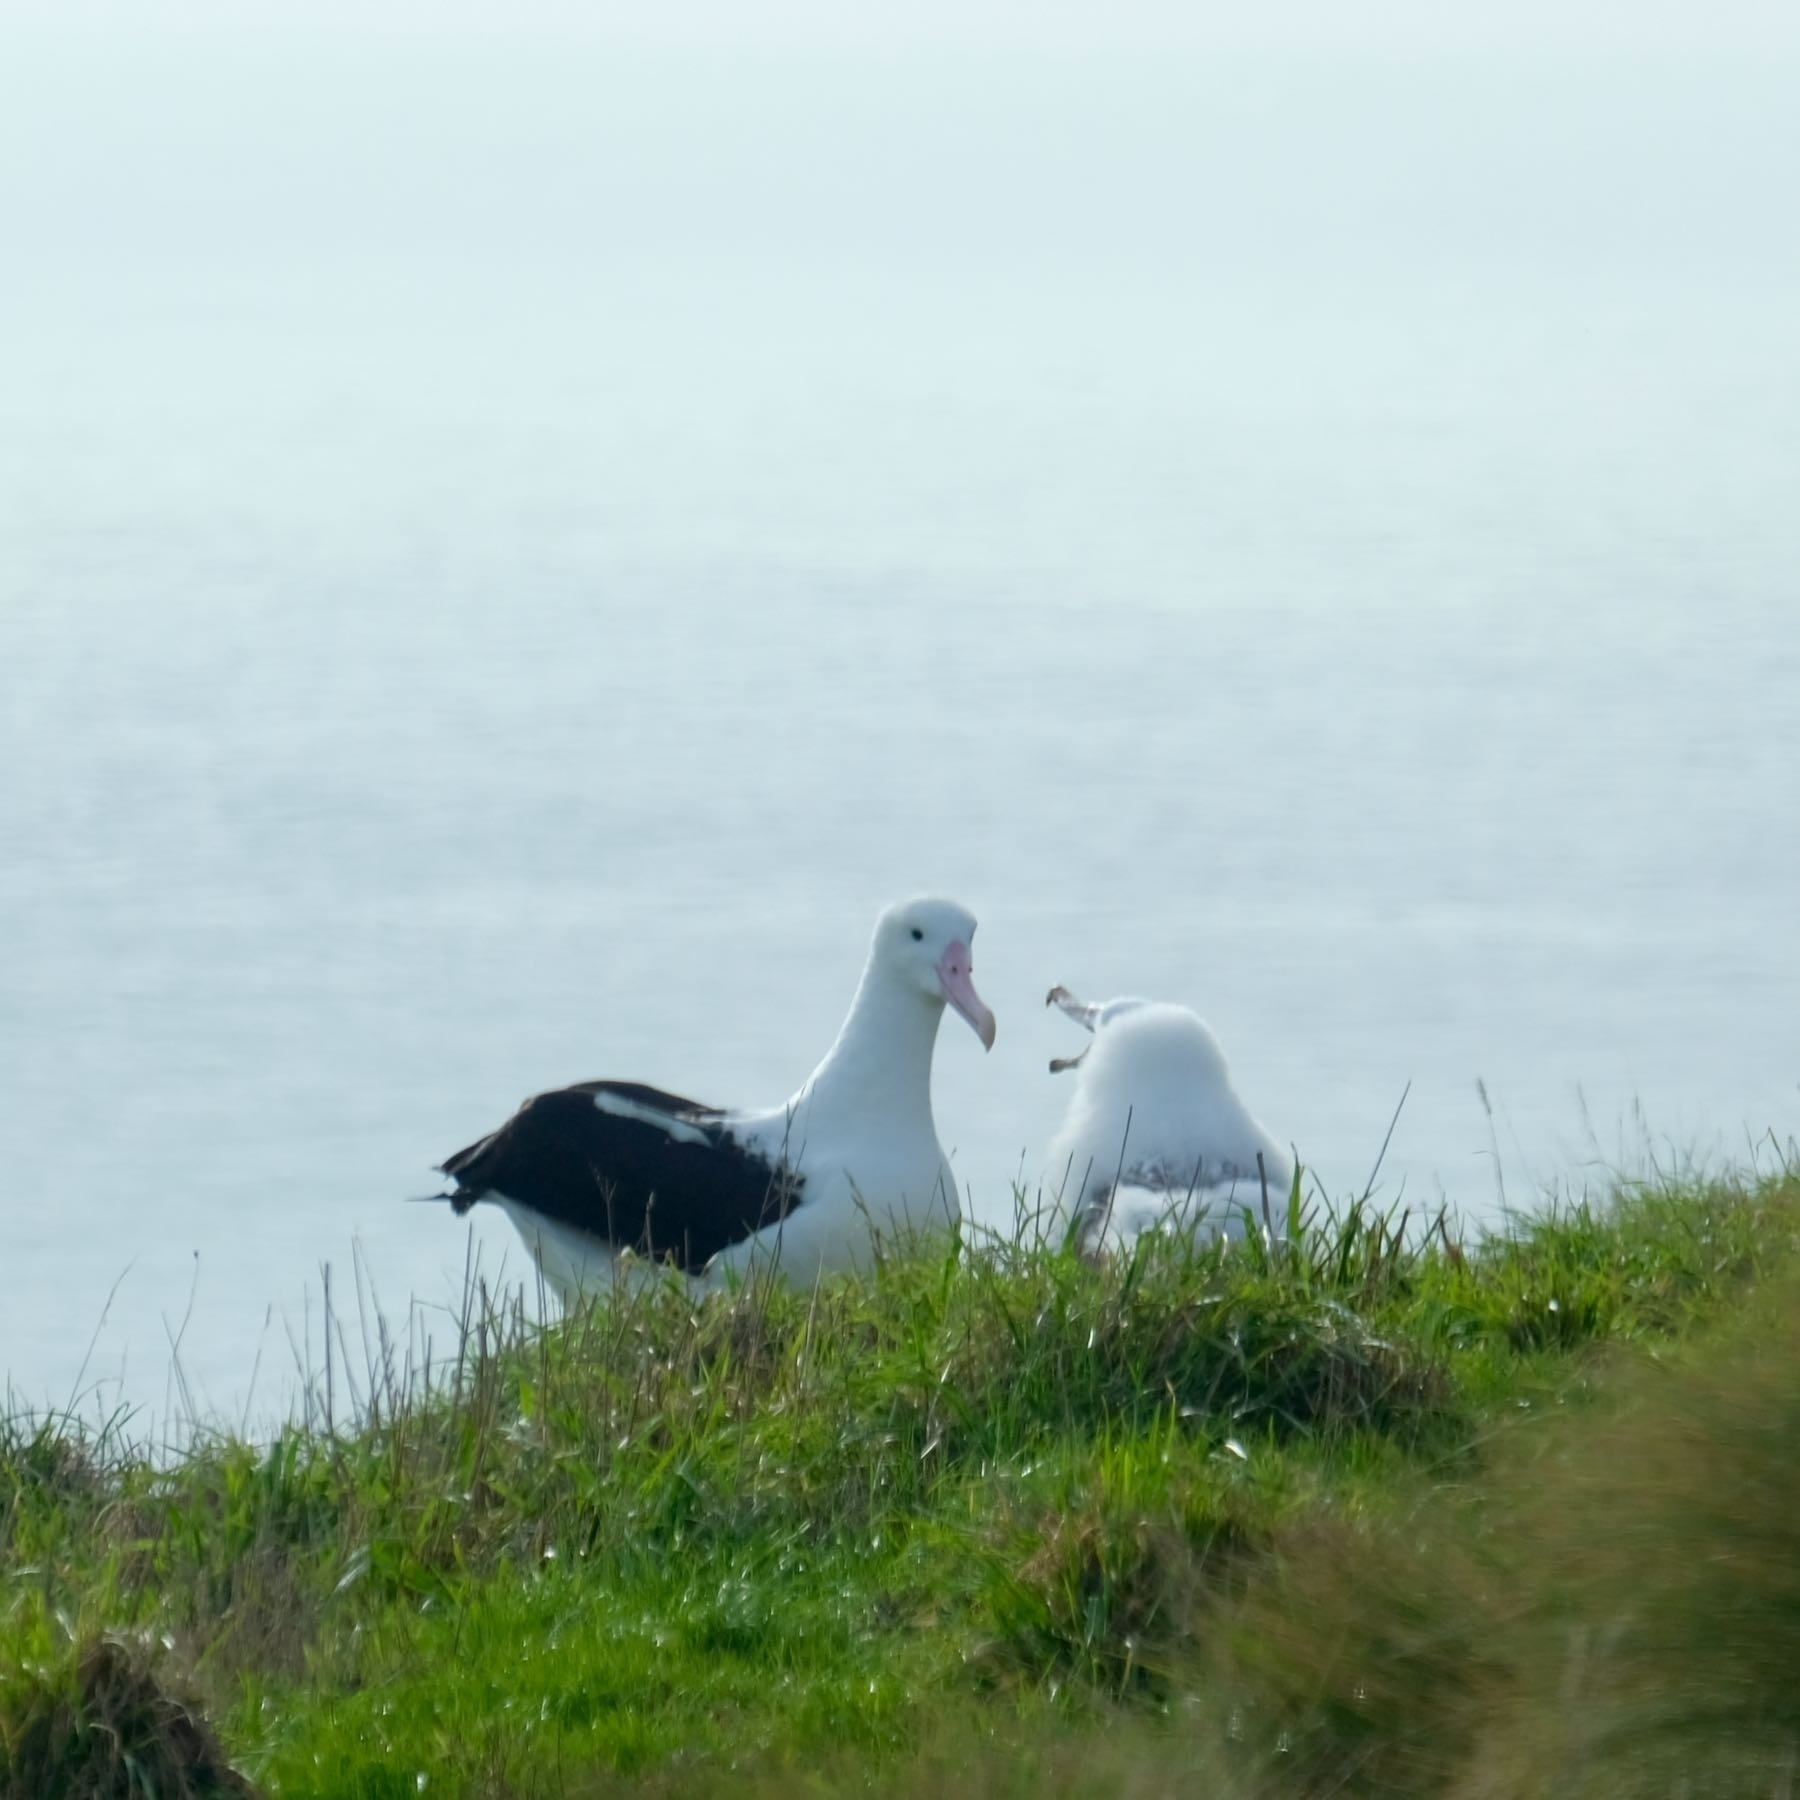 Adult and chick albatross.